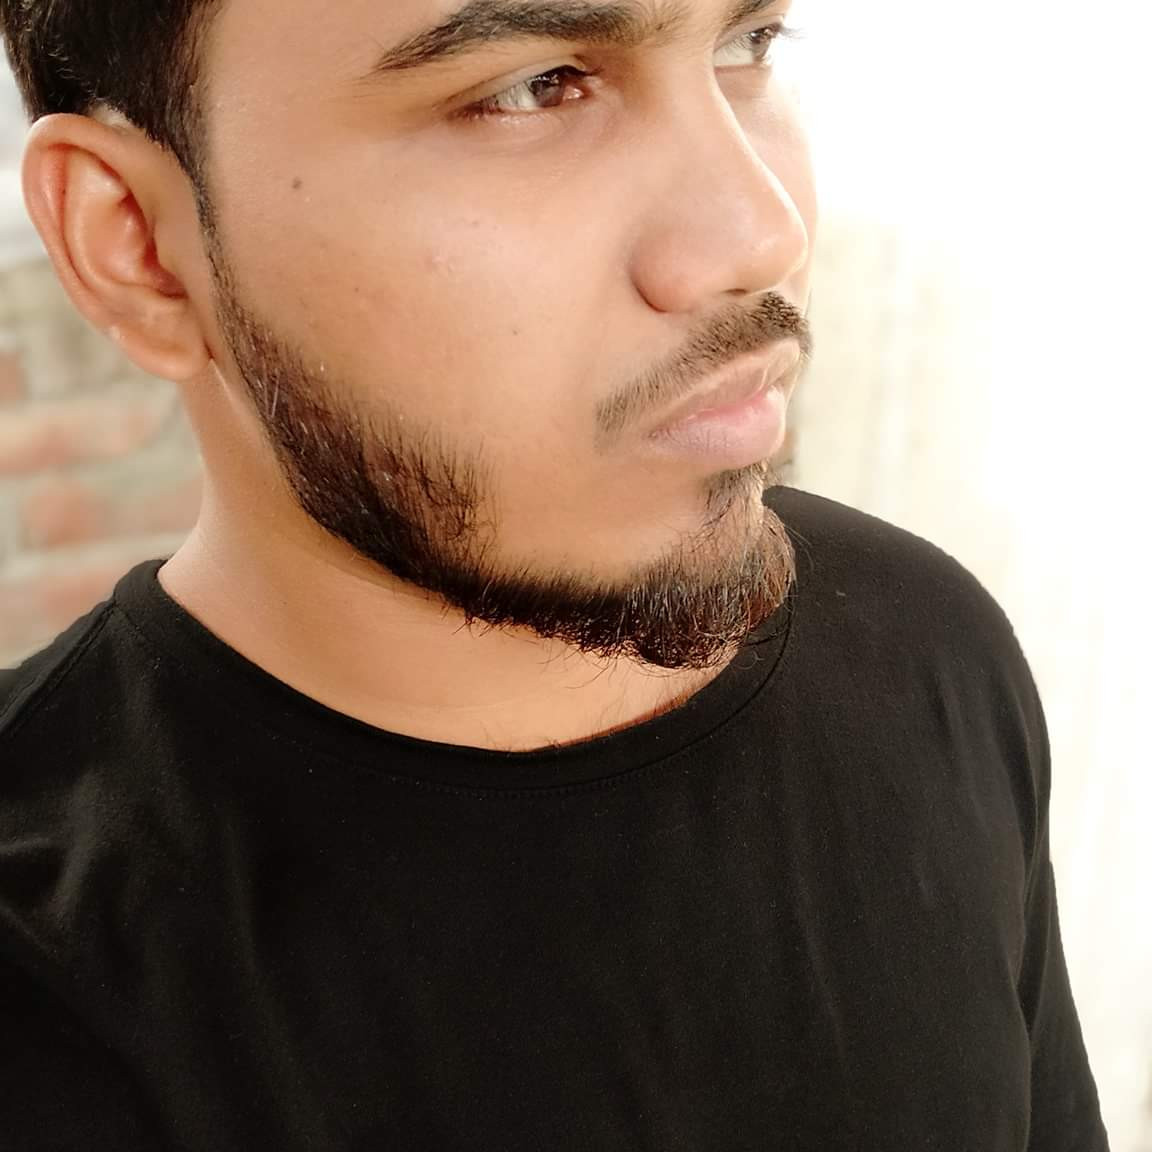 Muhammad Aslam's profile picture